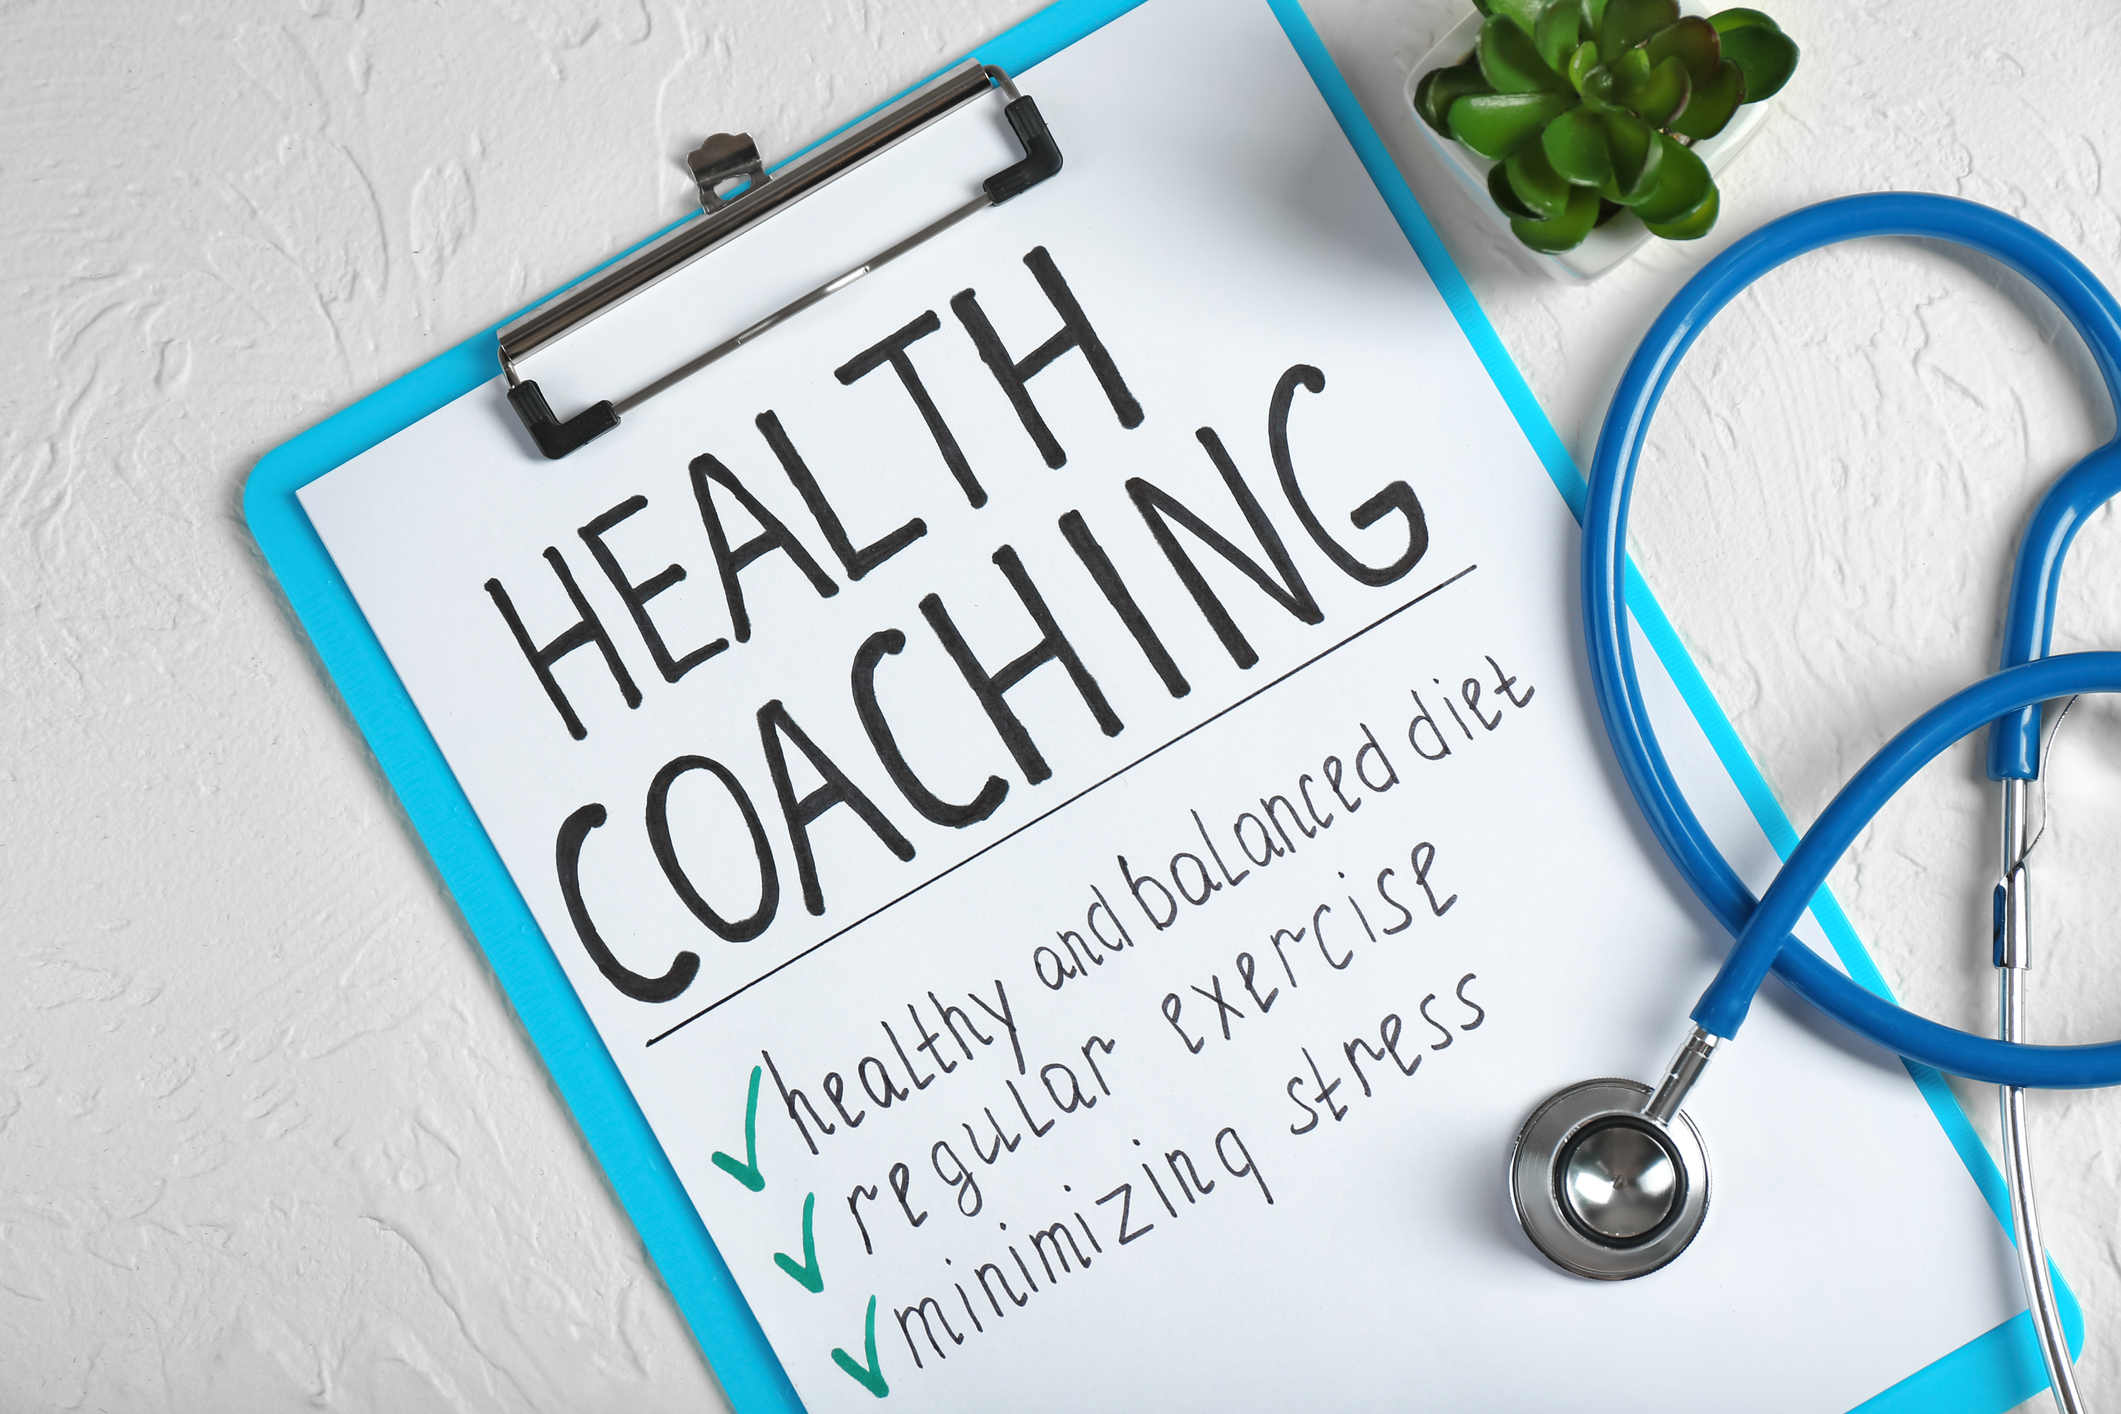 Health coaching is effective. Should you try it? - Harvard Health Blog - Harvard Health Publishing